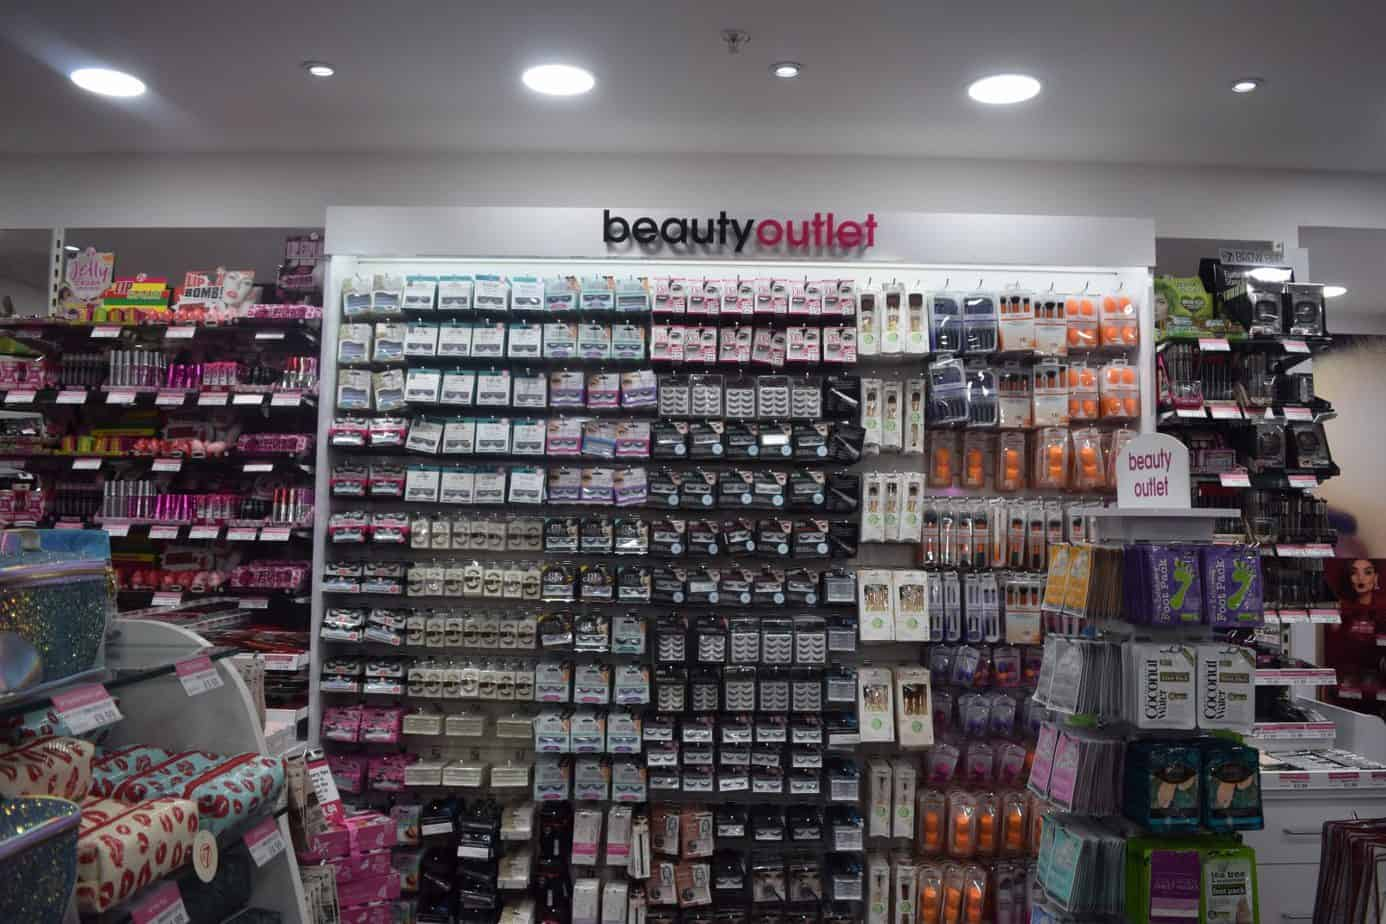 The beauty outlet eyelash bar